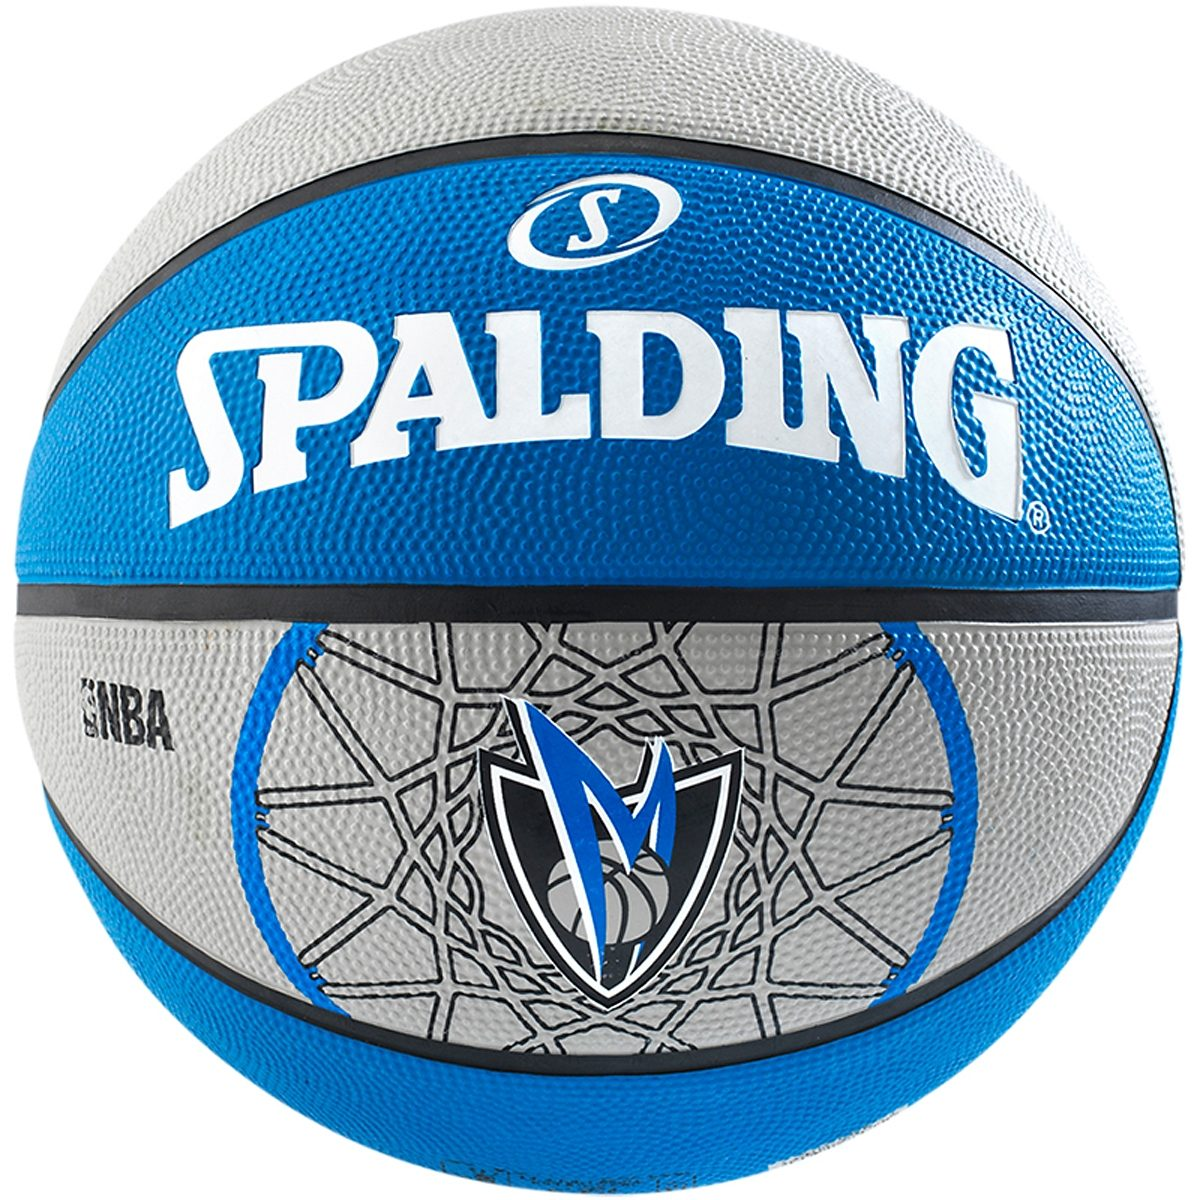 SPALDING Team Mavericks Basketball